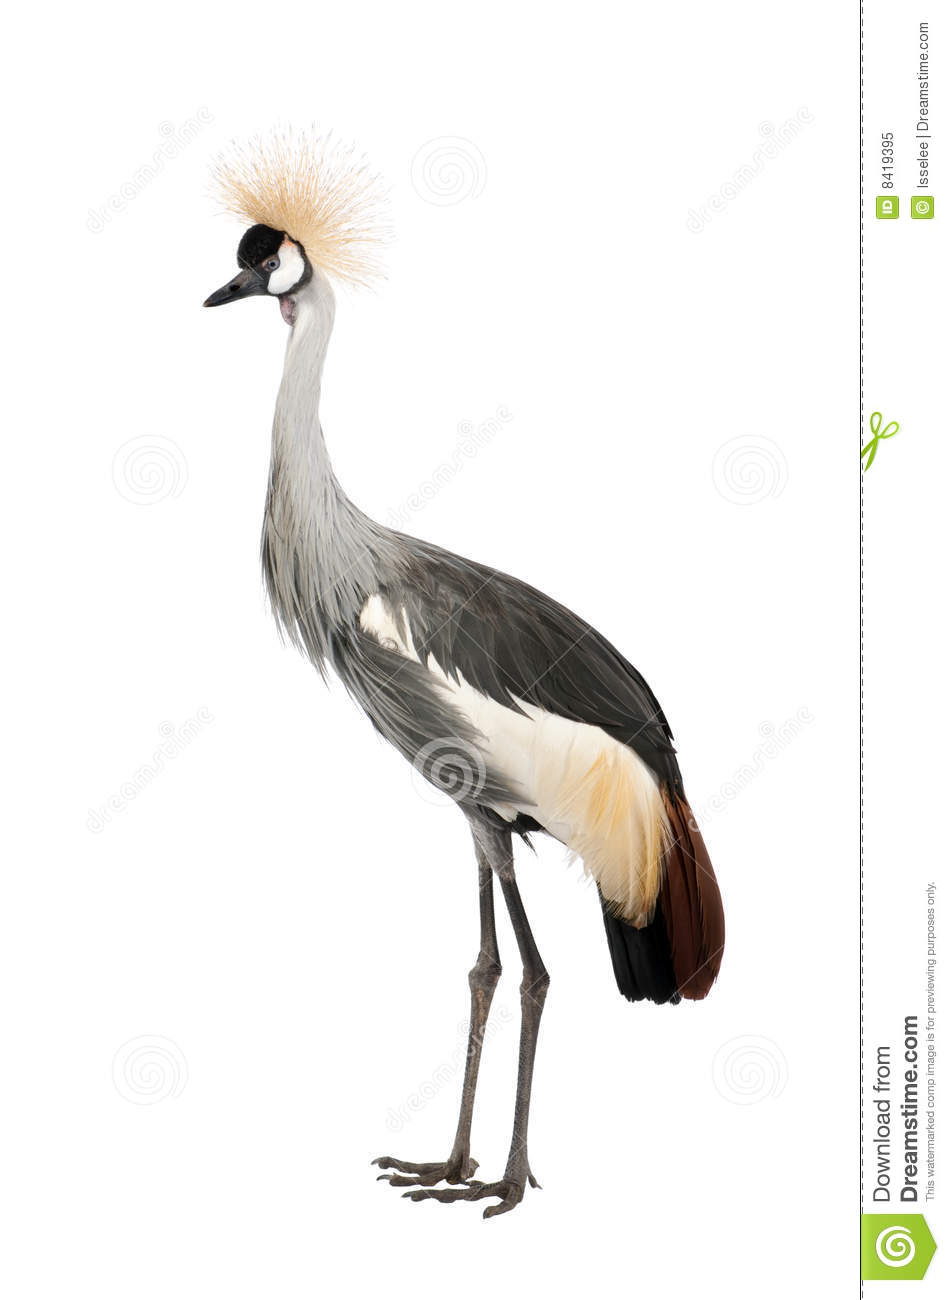 Grey Crowned Crane clipart #19, Download drawings